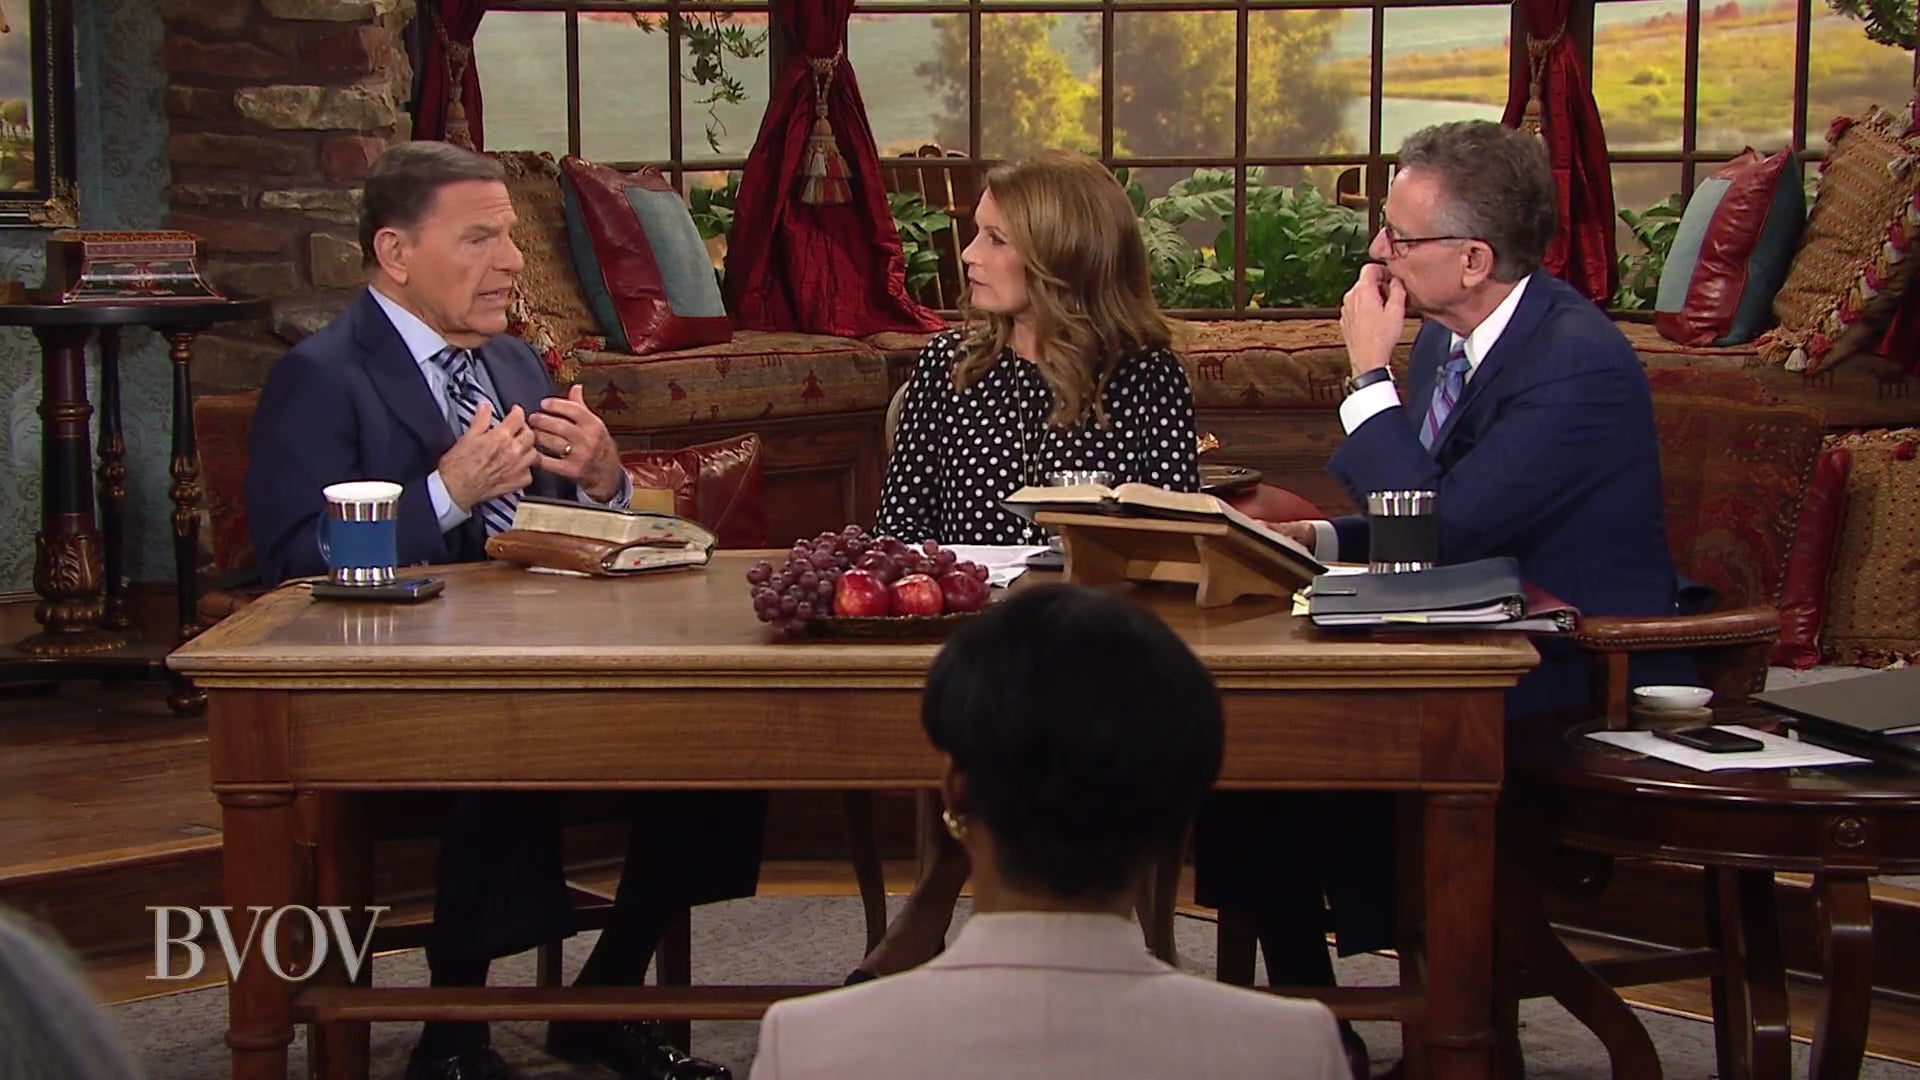 Who are the presidential candidates? Watch Kenneth Copeland, Michele Bachmann and George Pearsons on Believer's Voice of Victory as they discuss why understanding the two party platforms will help you know what each candidate stands for and how they view God.